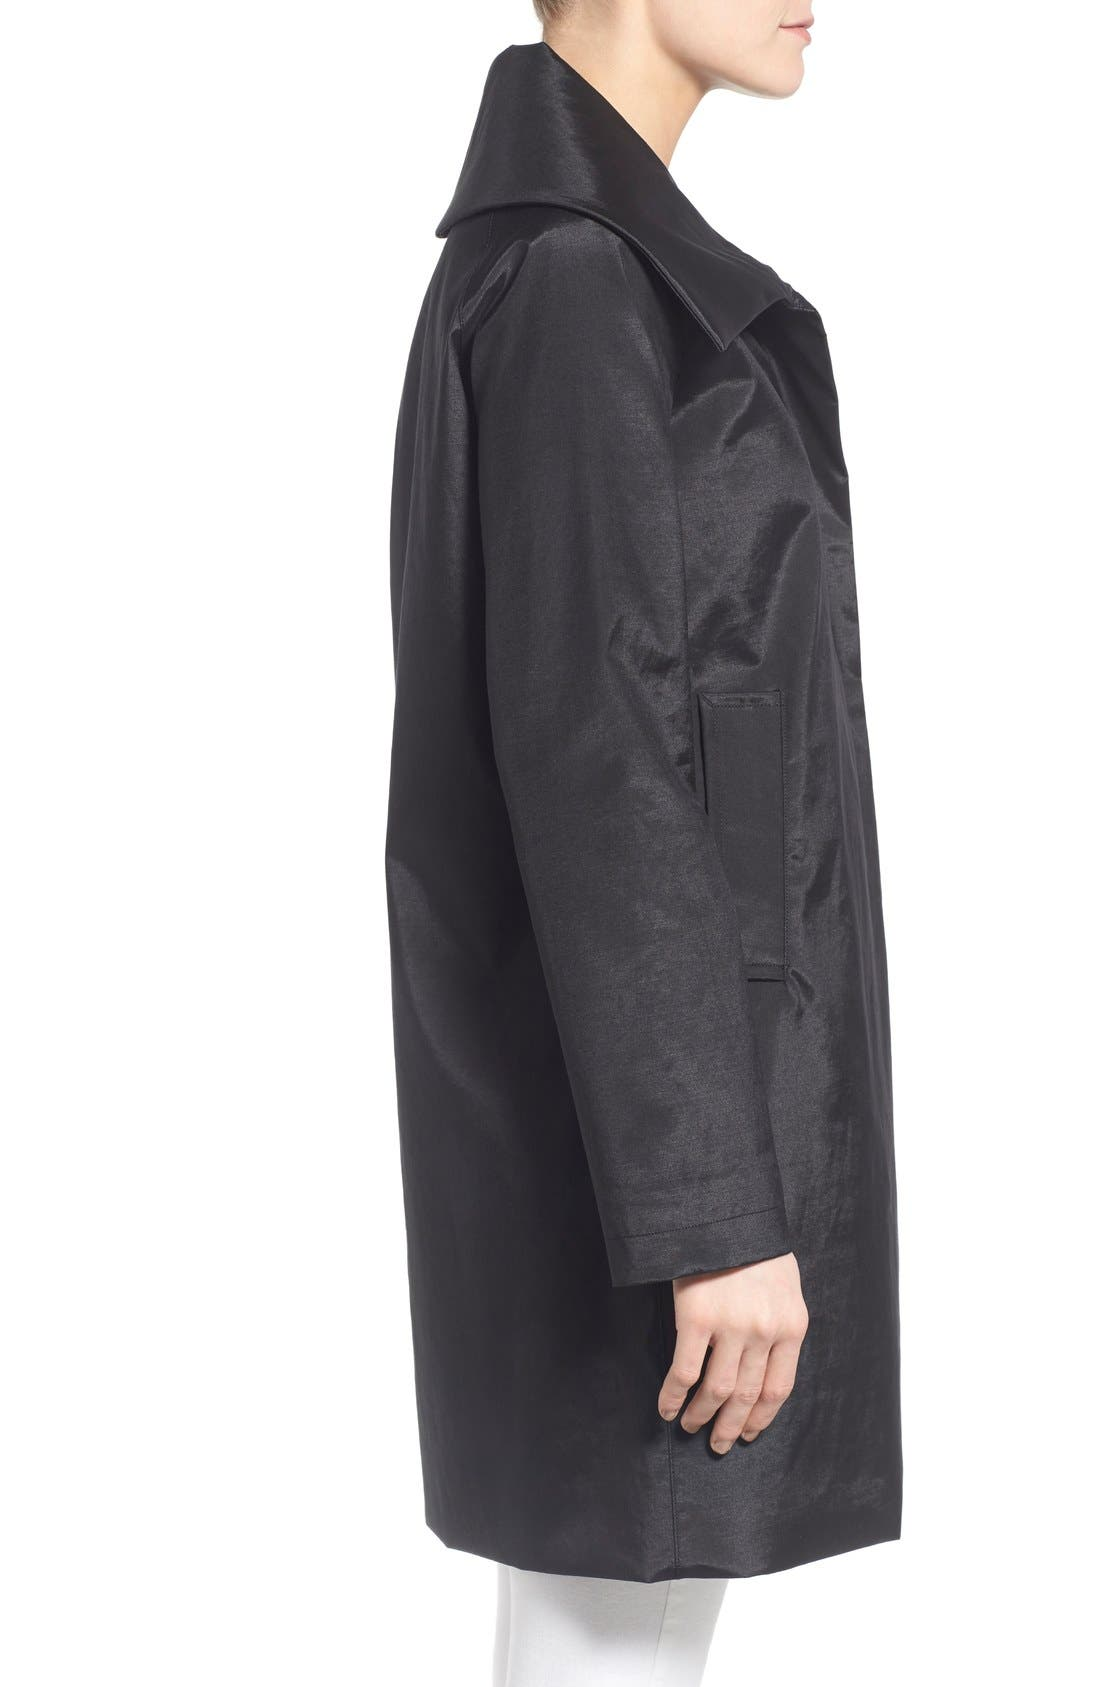 JANE POST,                             Envelope Collar A-Line Raincoat,                             Alternate thumbnail 2, color,                             001